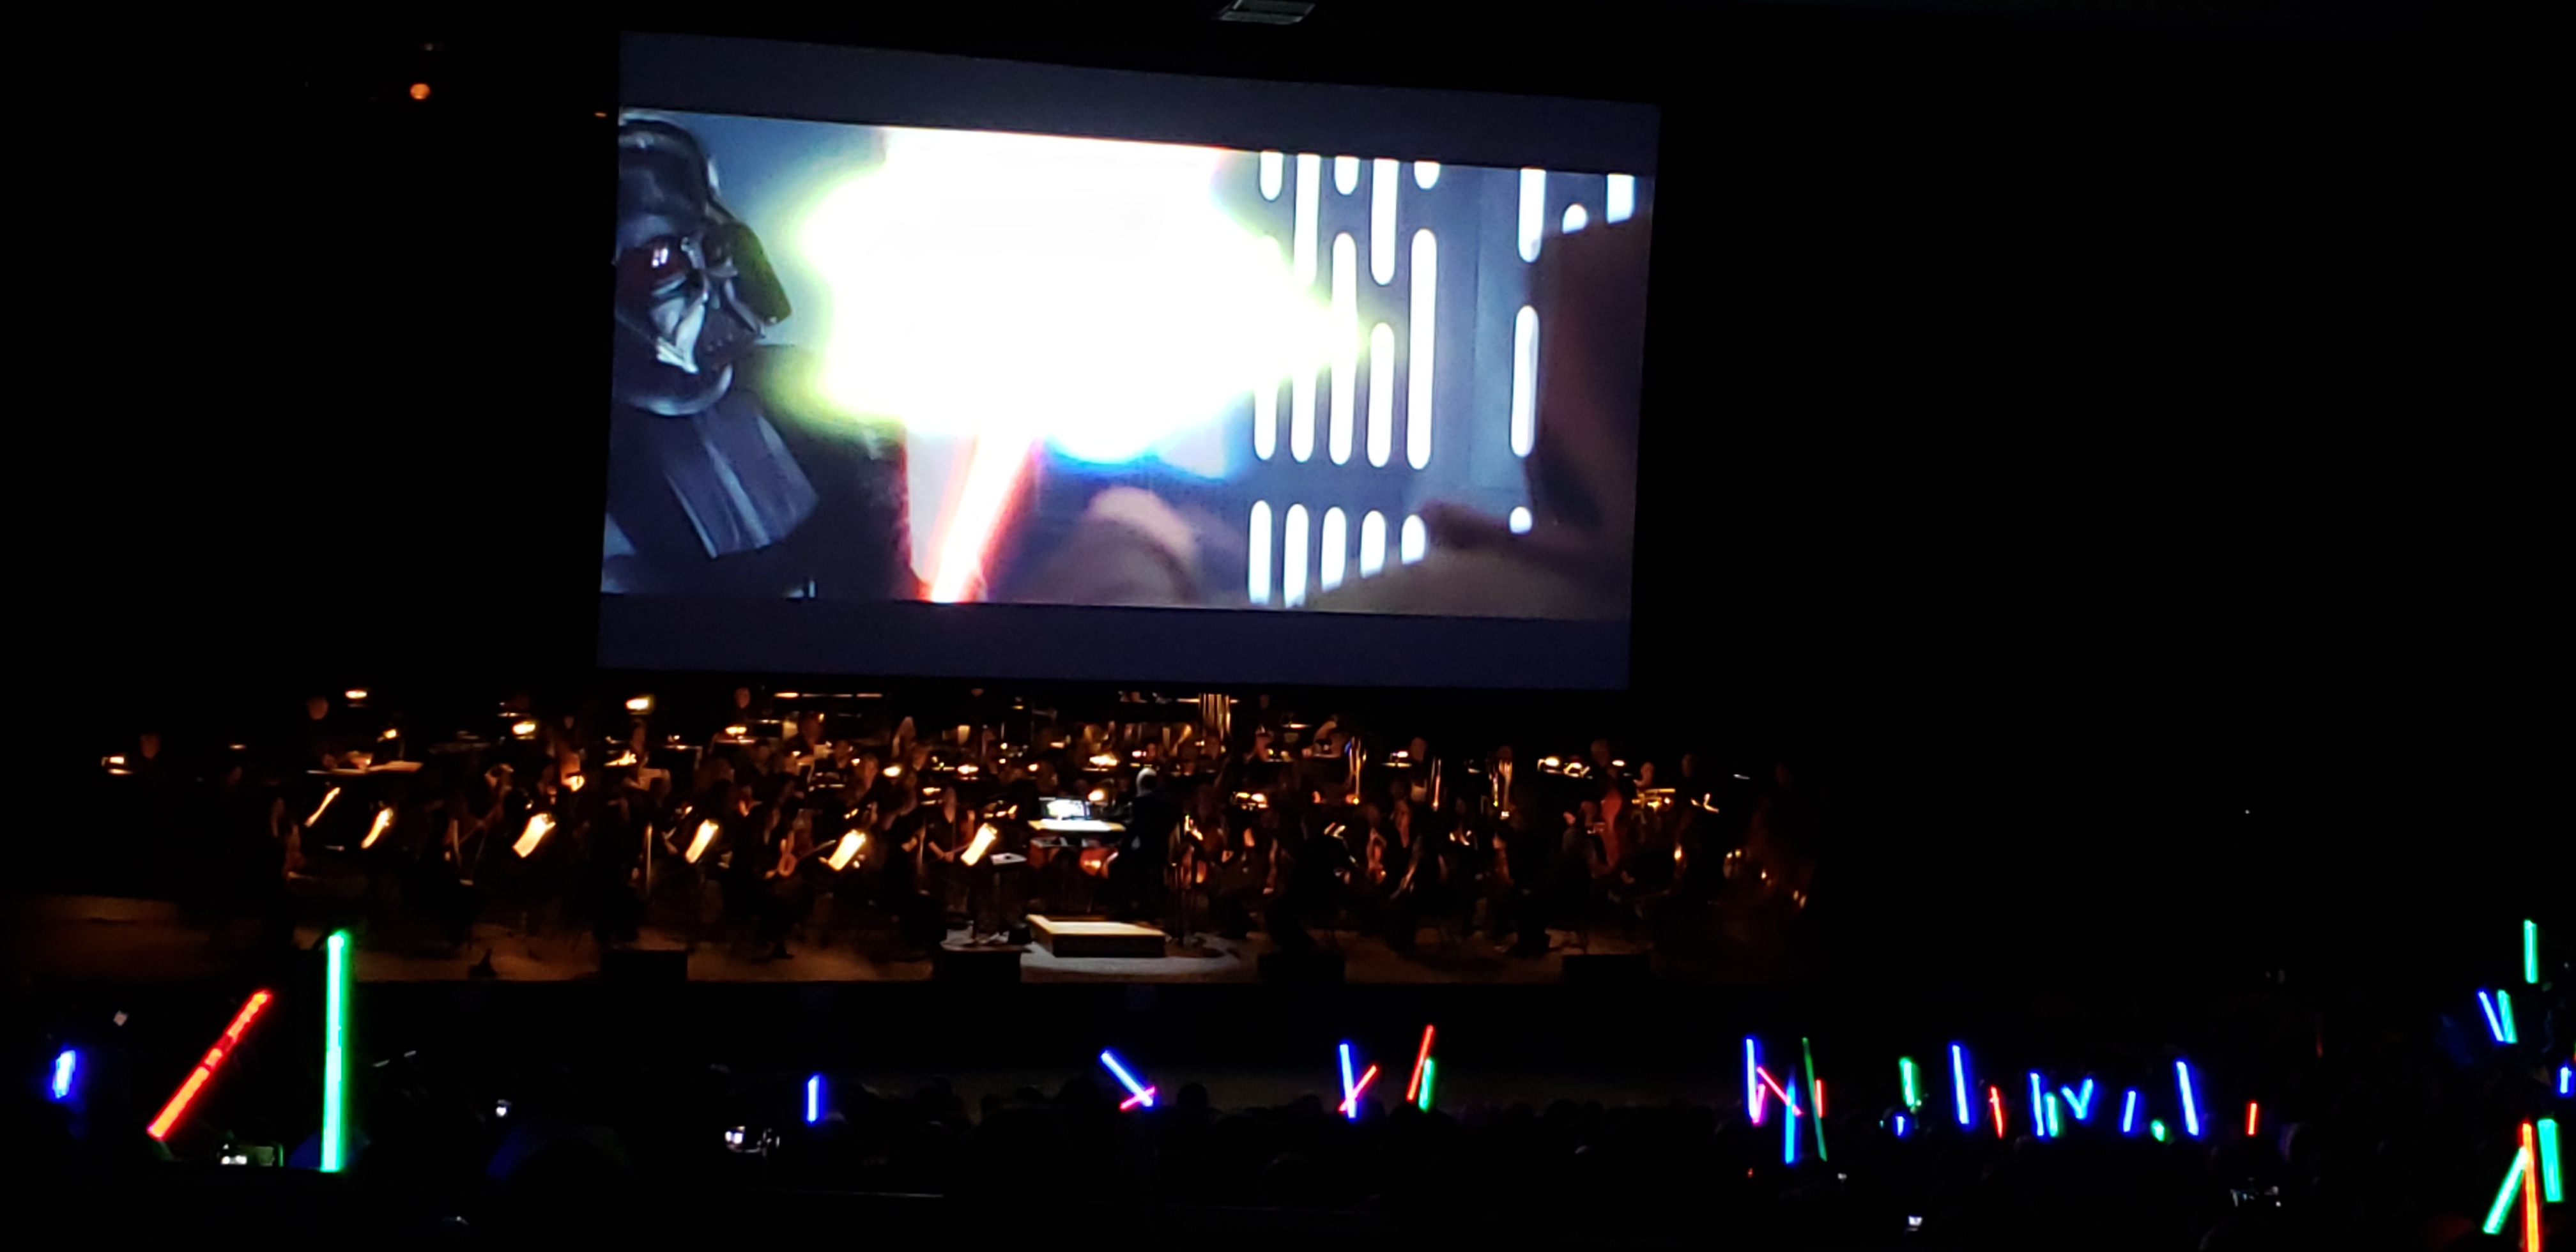 At Star Wars Concert - A New Hope